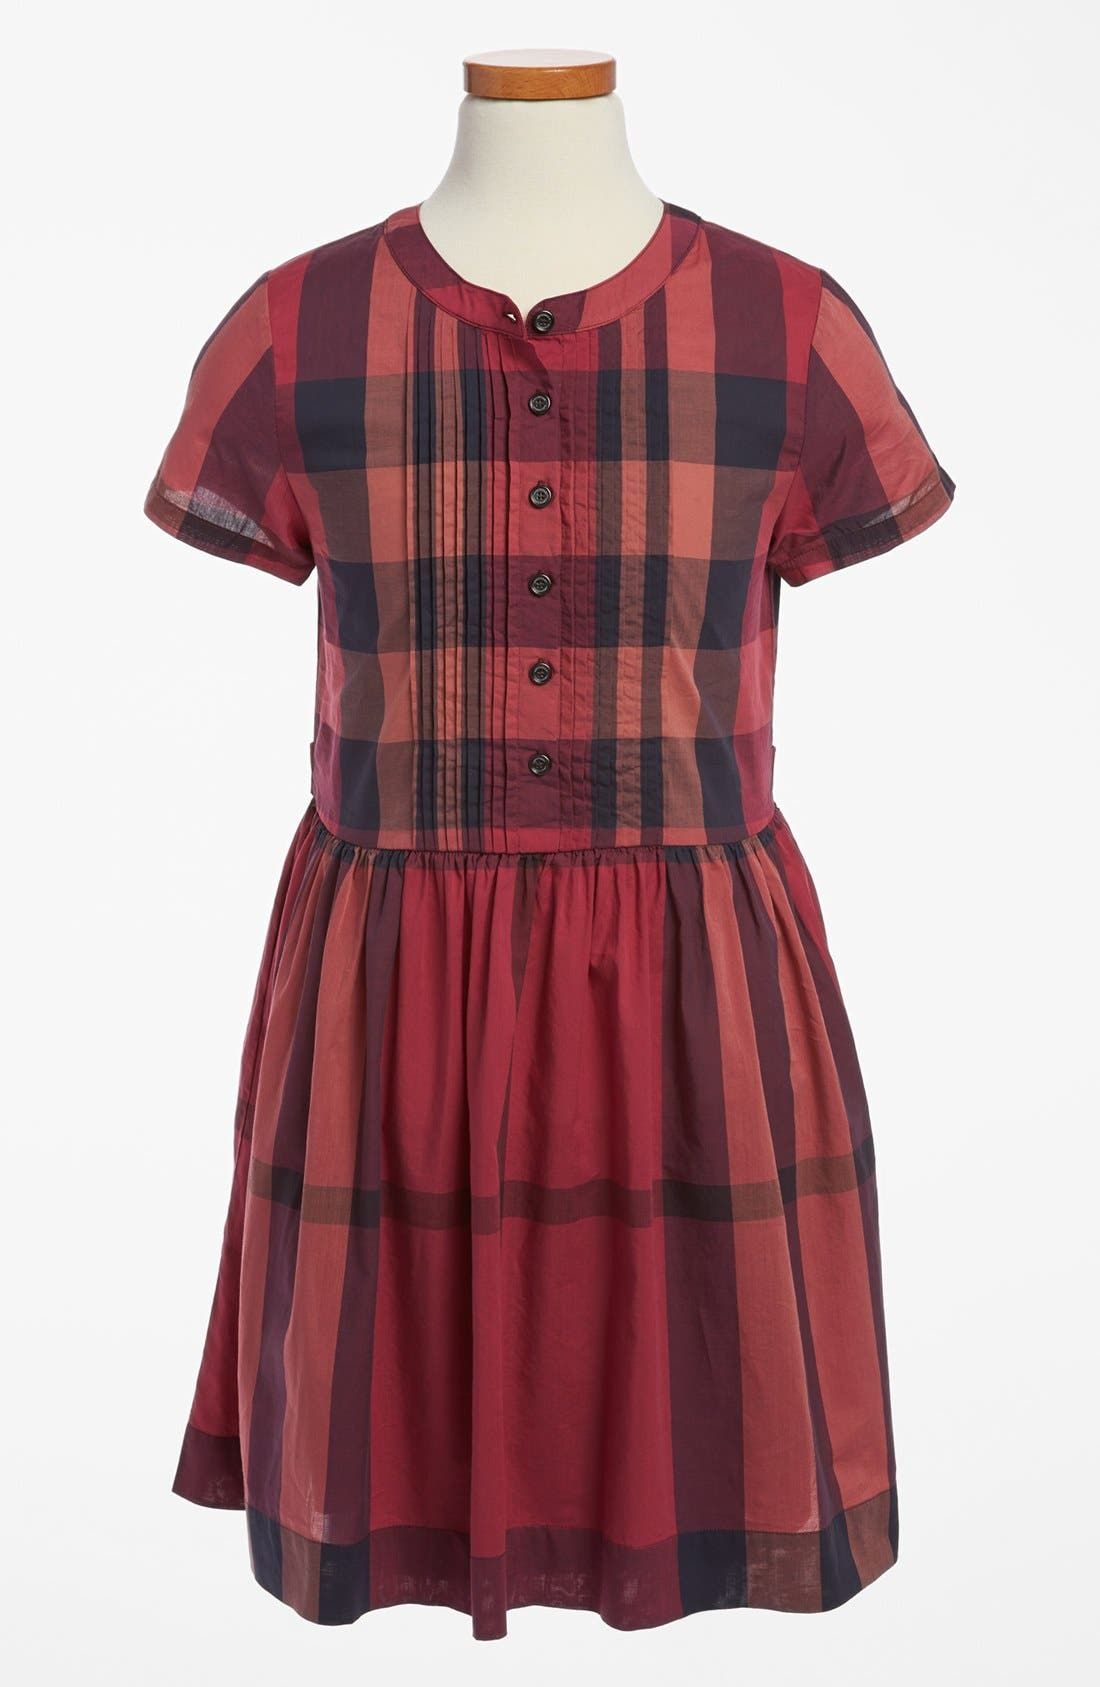 Alternate Image 1 Selected - Burberry 'Dally' Dress (Little Girls & Big Girls)